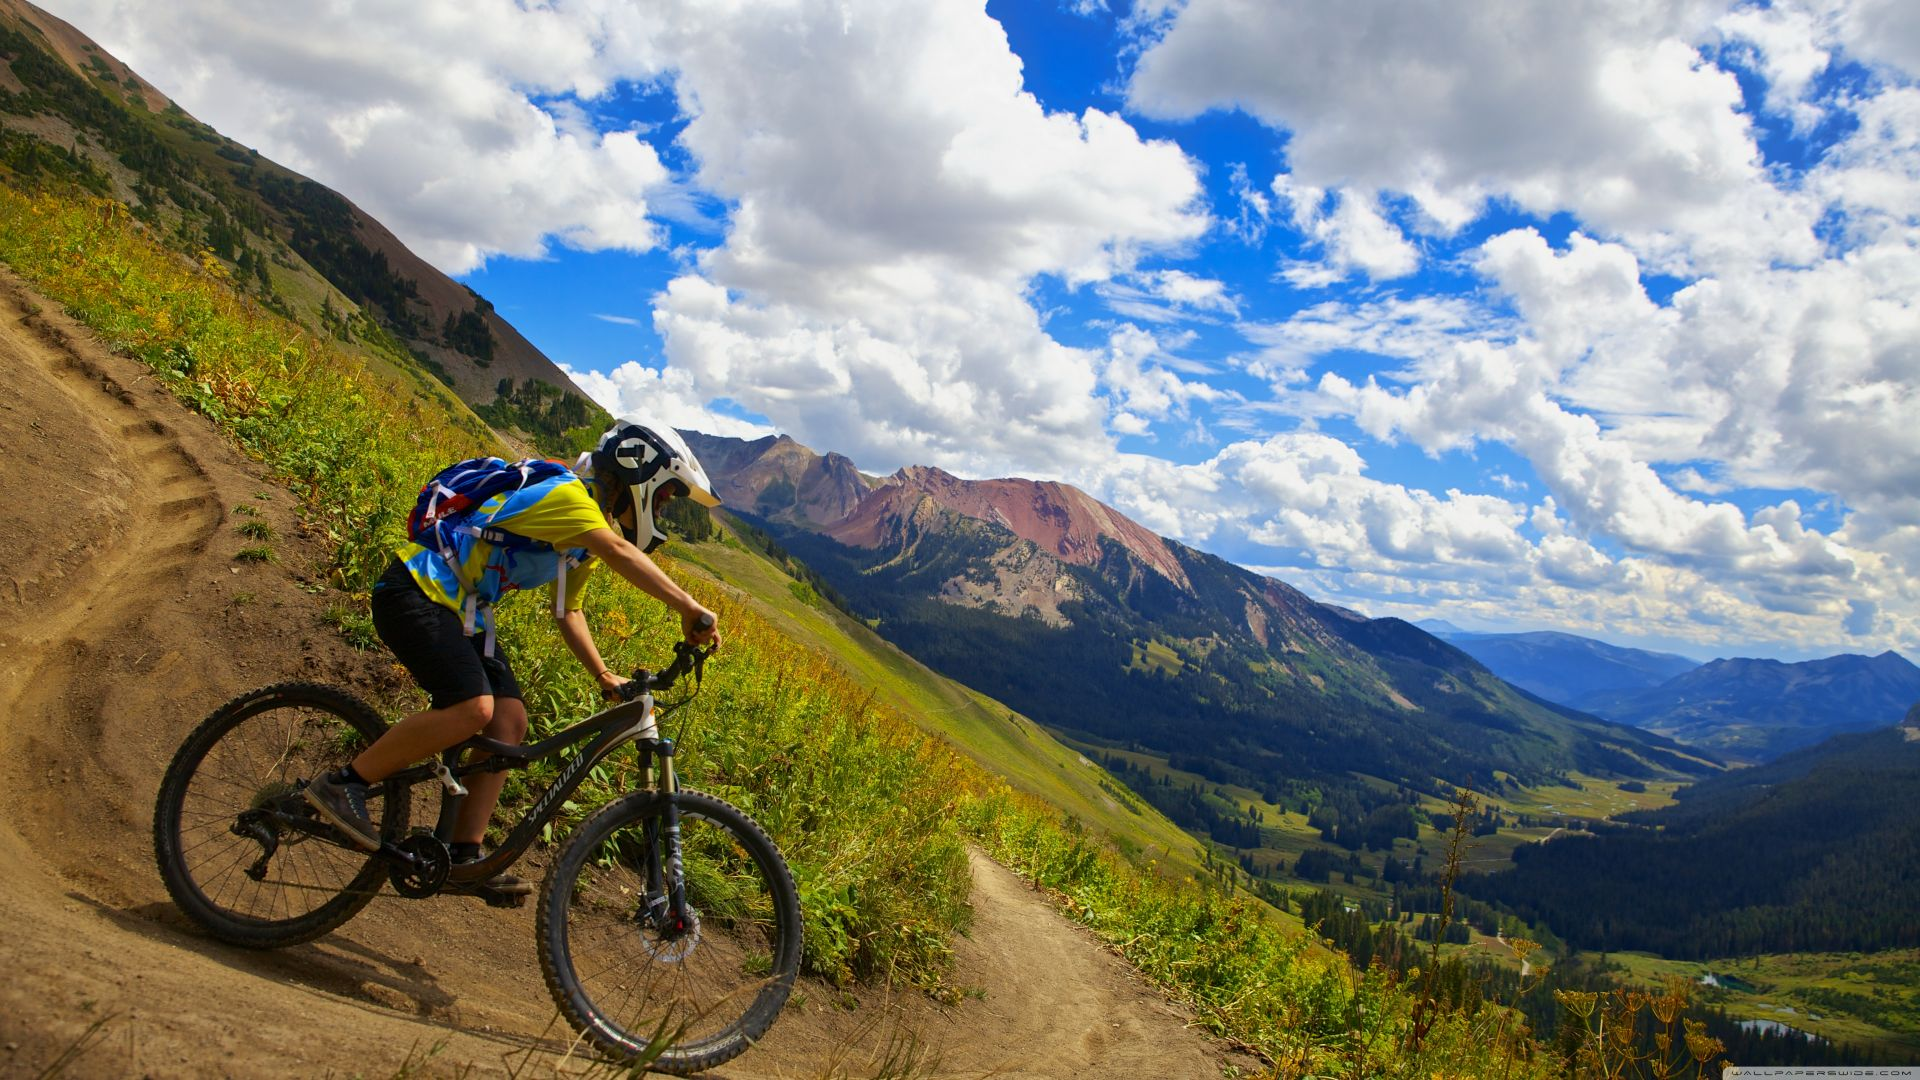 Crested butte biking, cycle racing, mount, sky, clouds (horizontal)